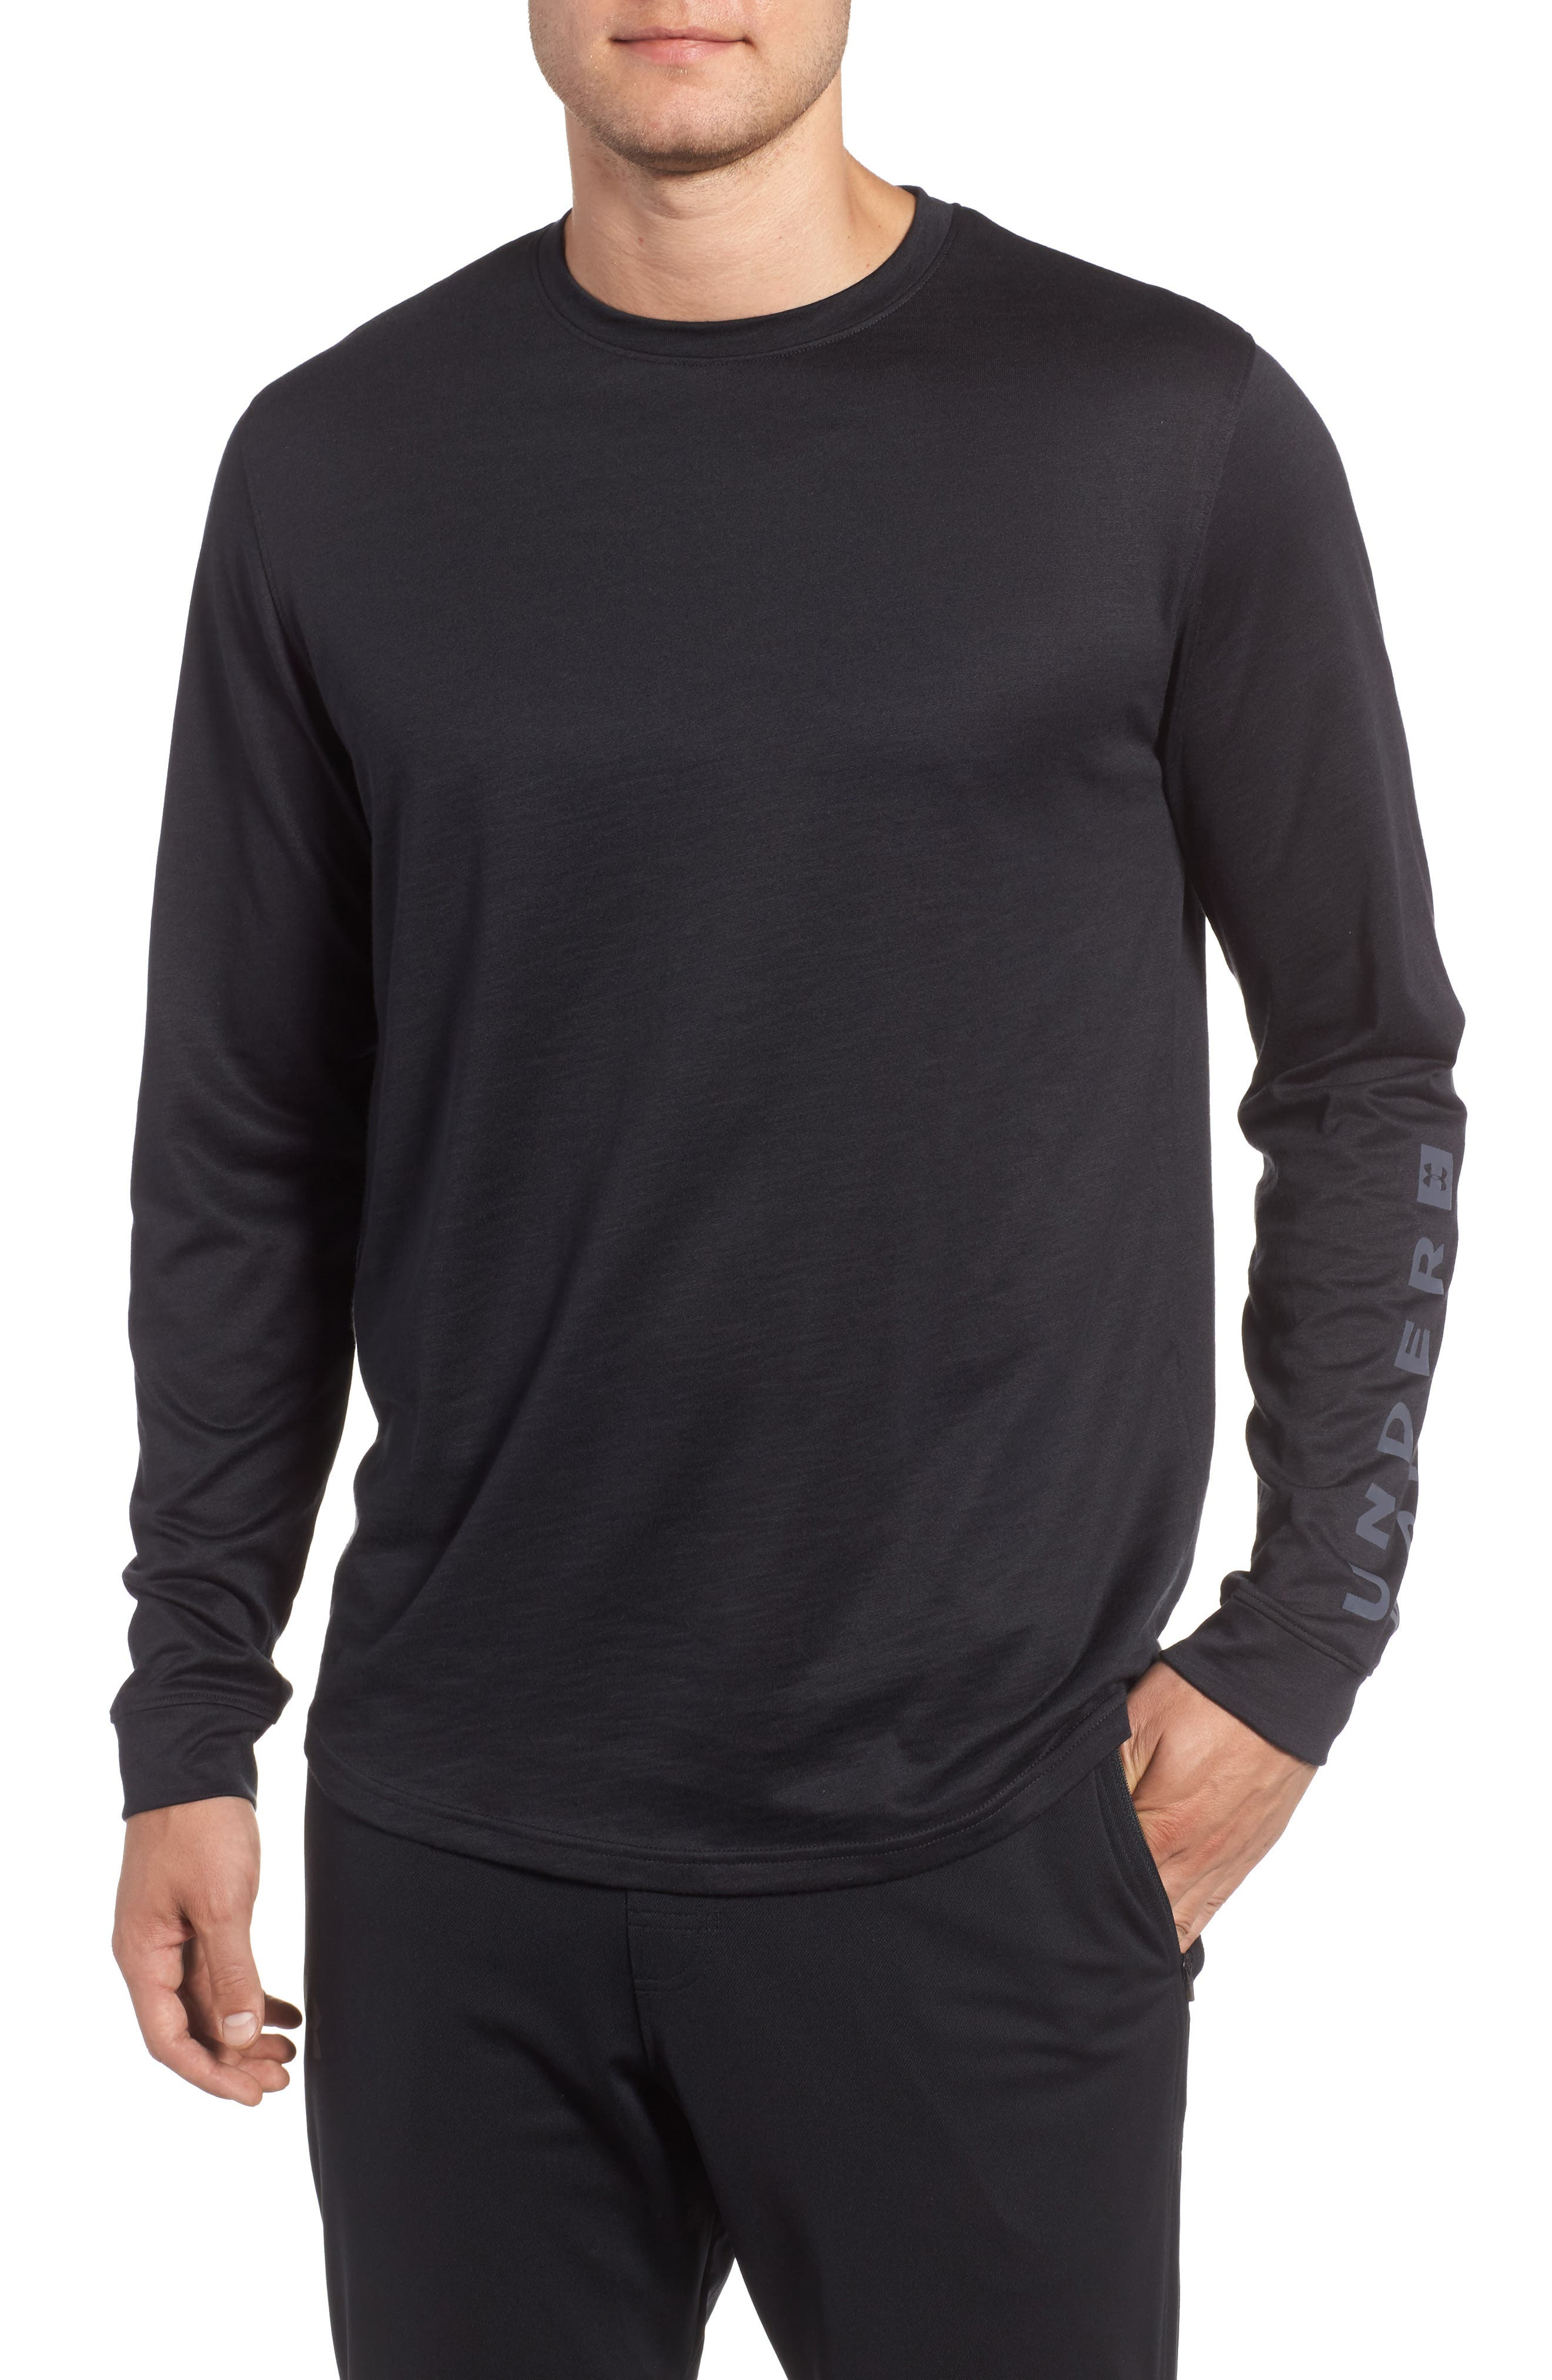 Alternate Image 1 Selected - Under Armour Sportstyle Long Sleeve Graphic T-Shirt